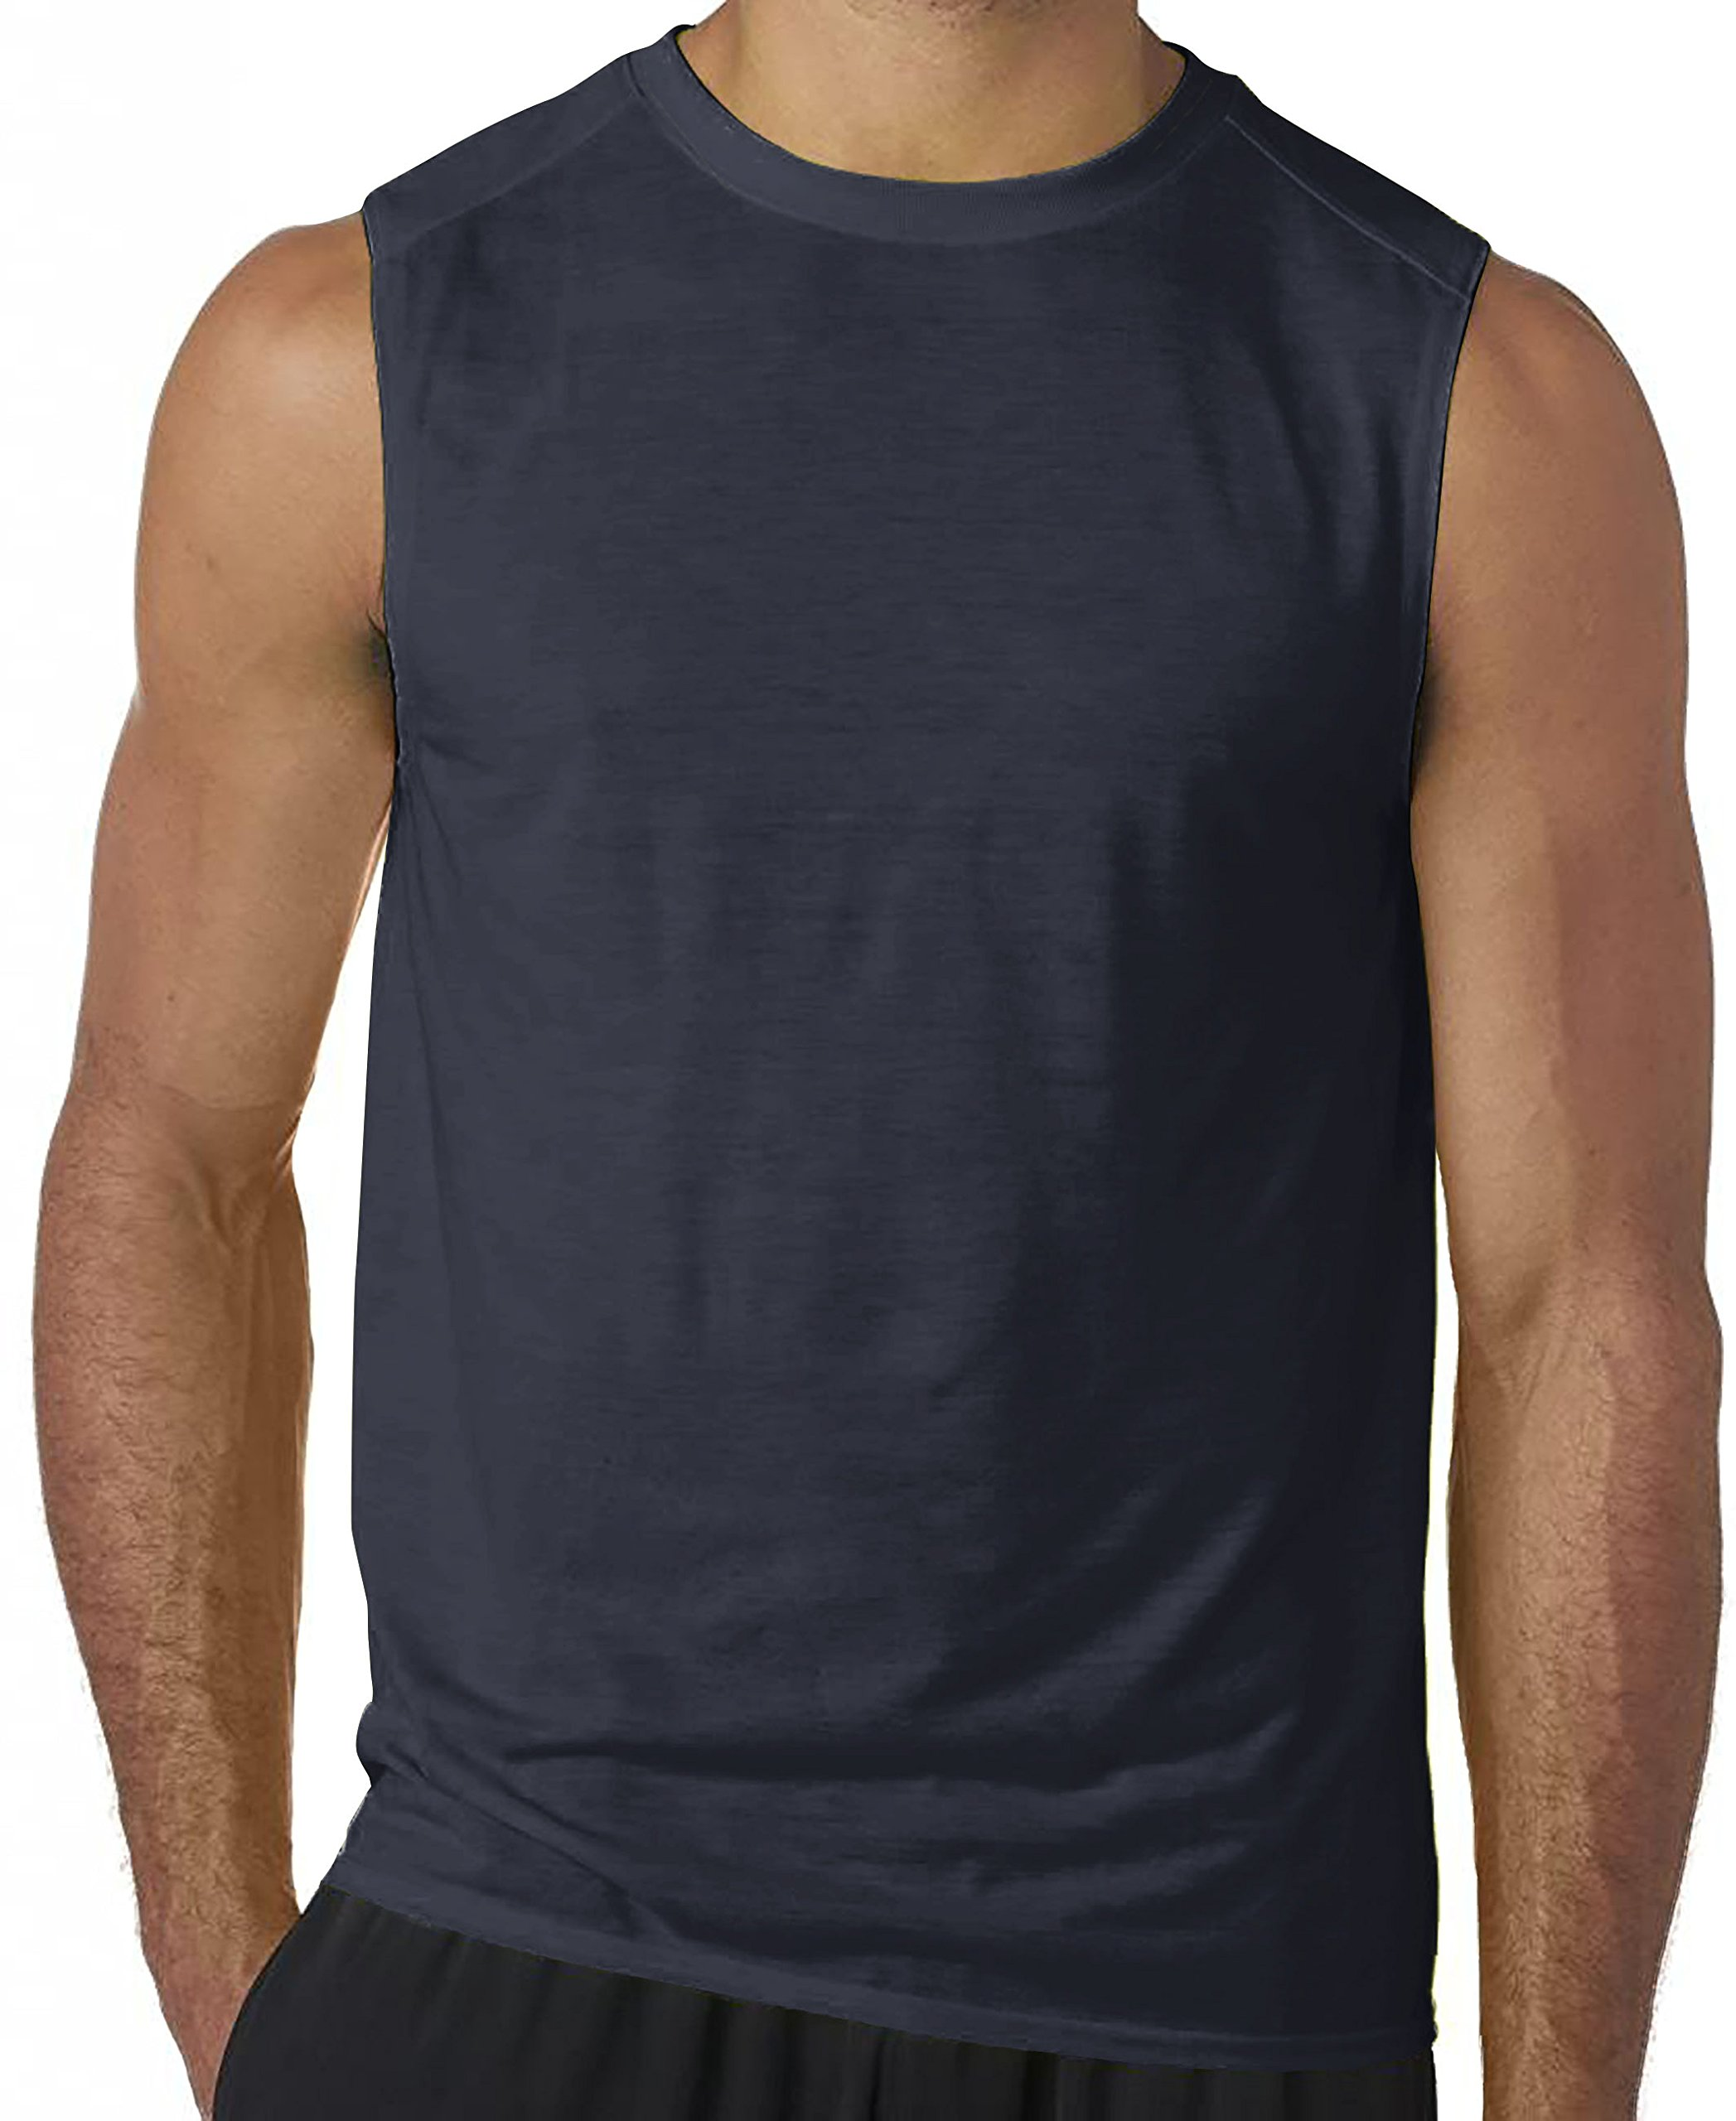 Hat and Beyond TA Mens Sleeveless Muscle Tank Top